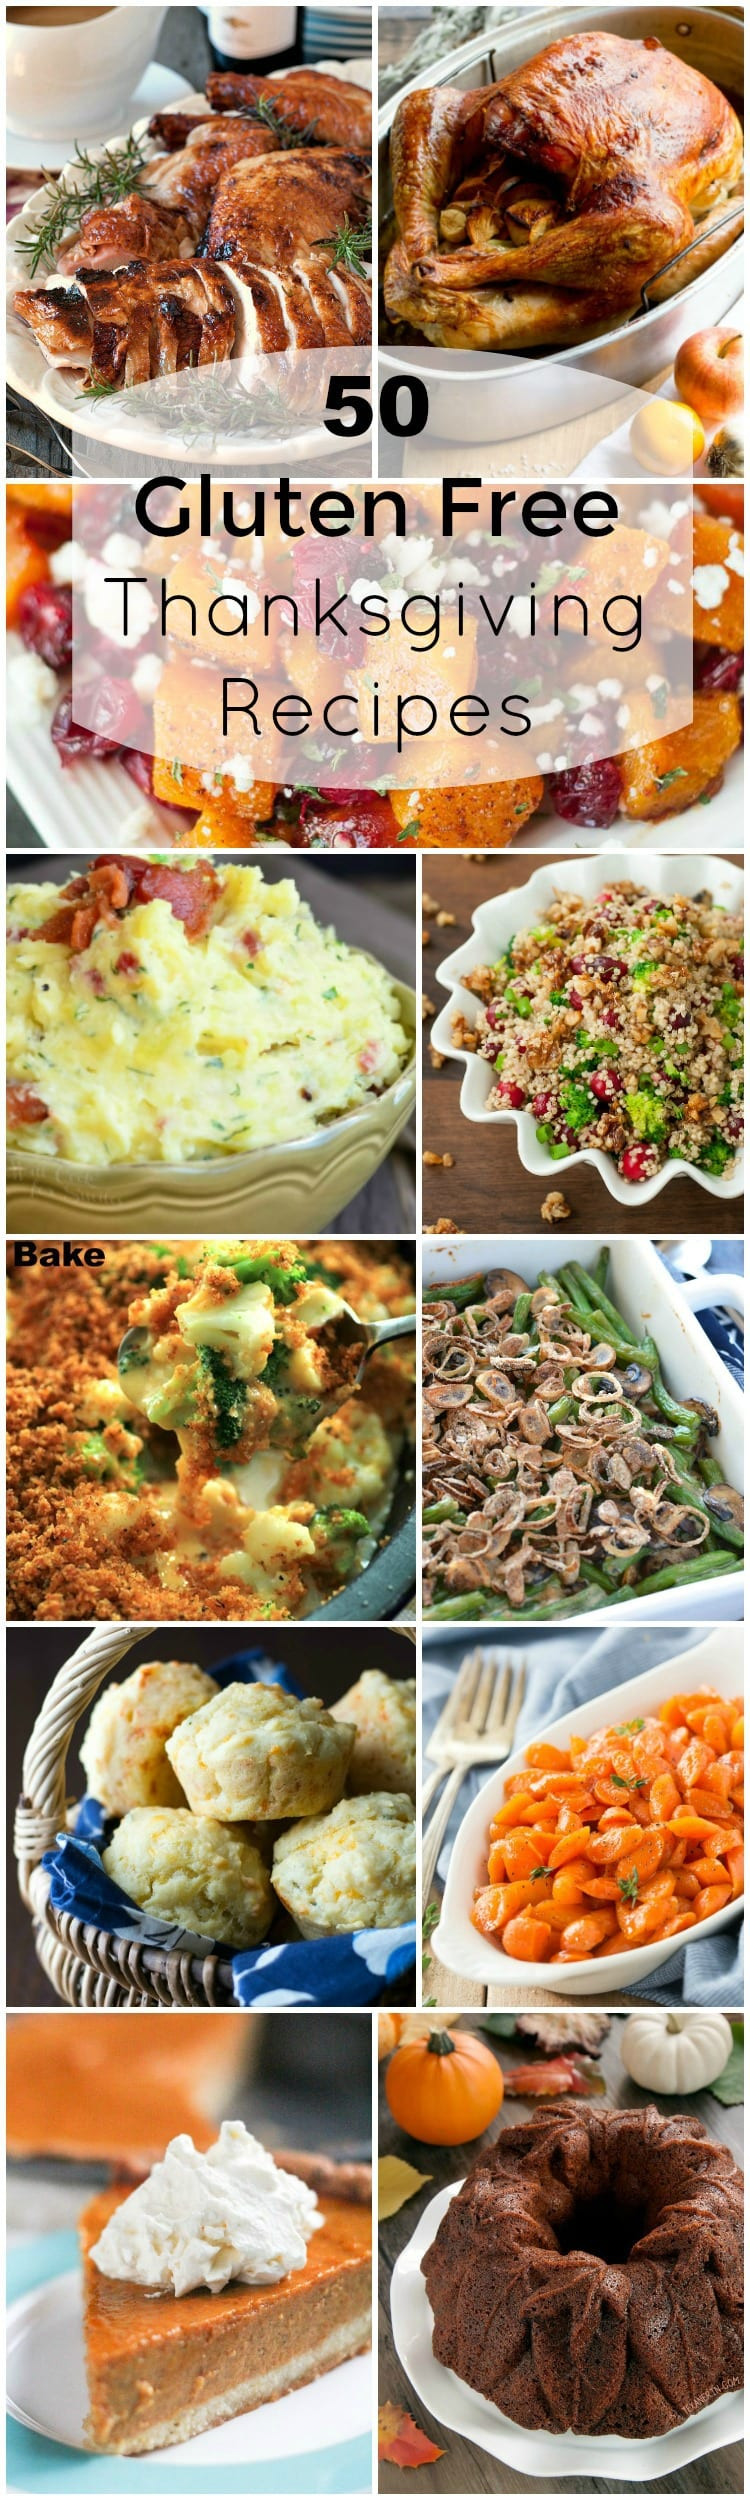 Dairy Free Thanksgiving Recipes  50 Recipes For A plete Gluten Free Thanksgiving Dinner